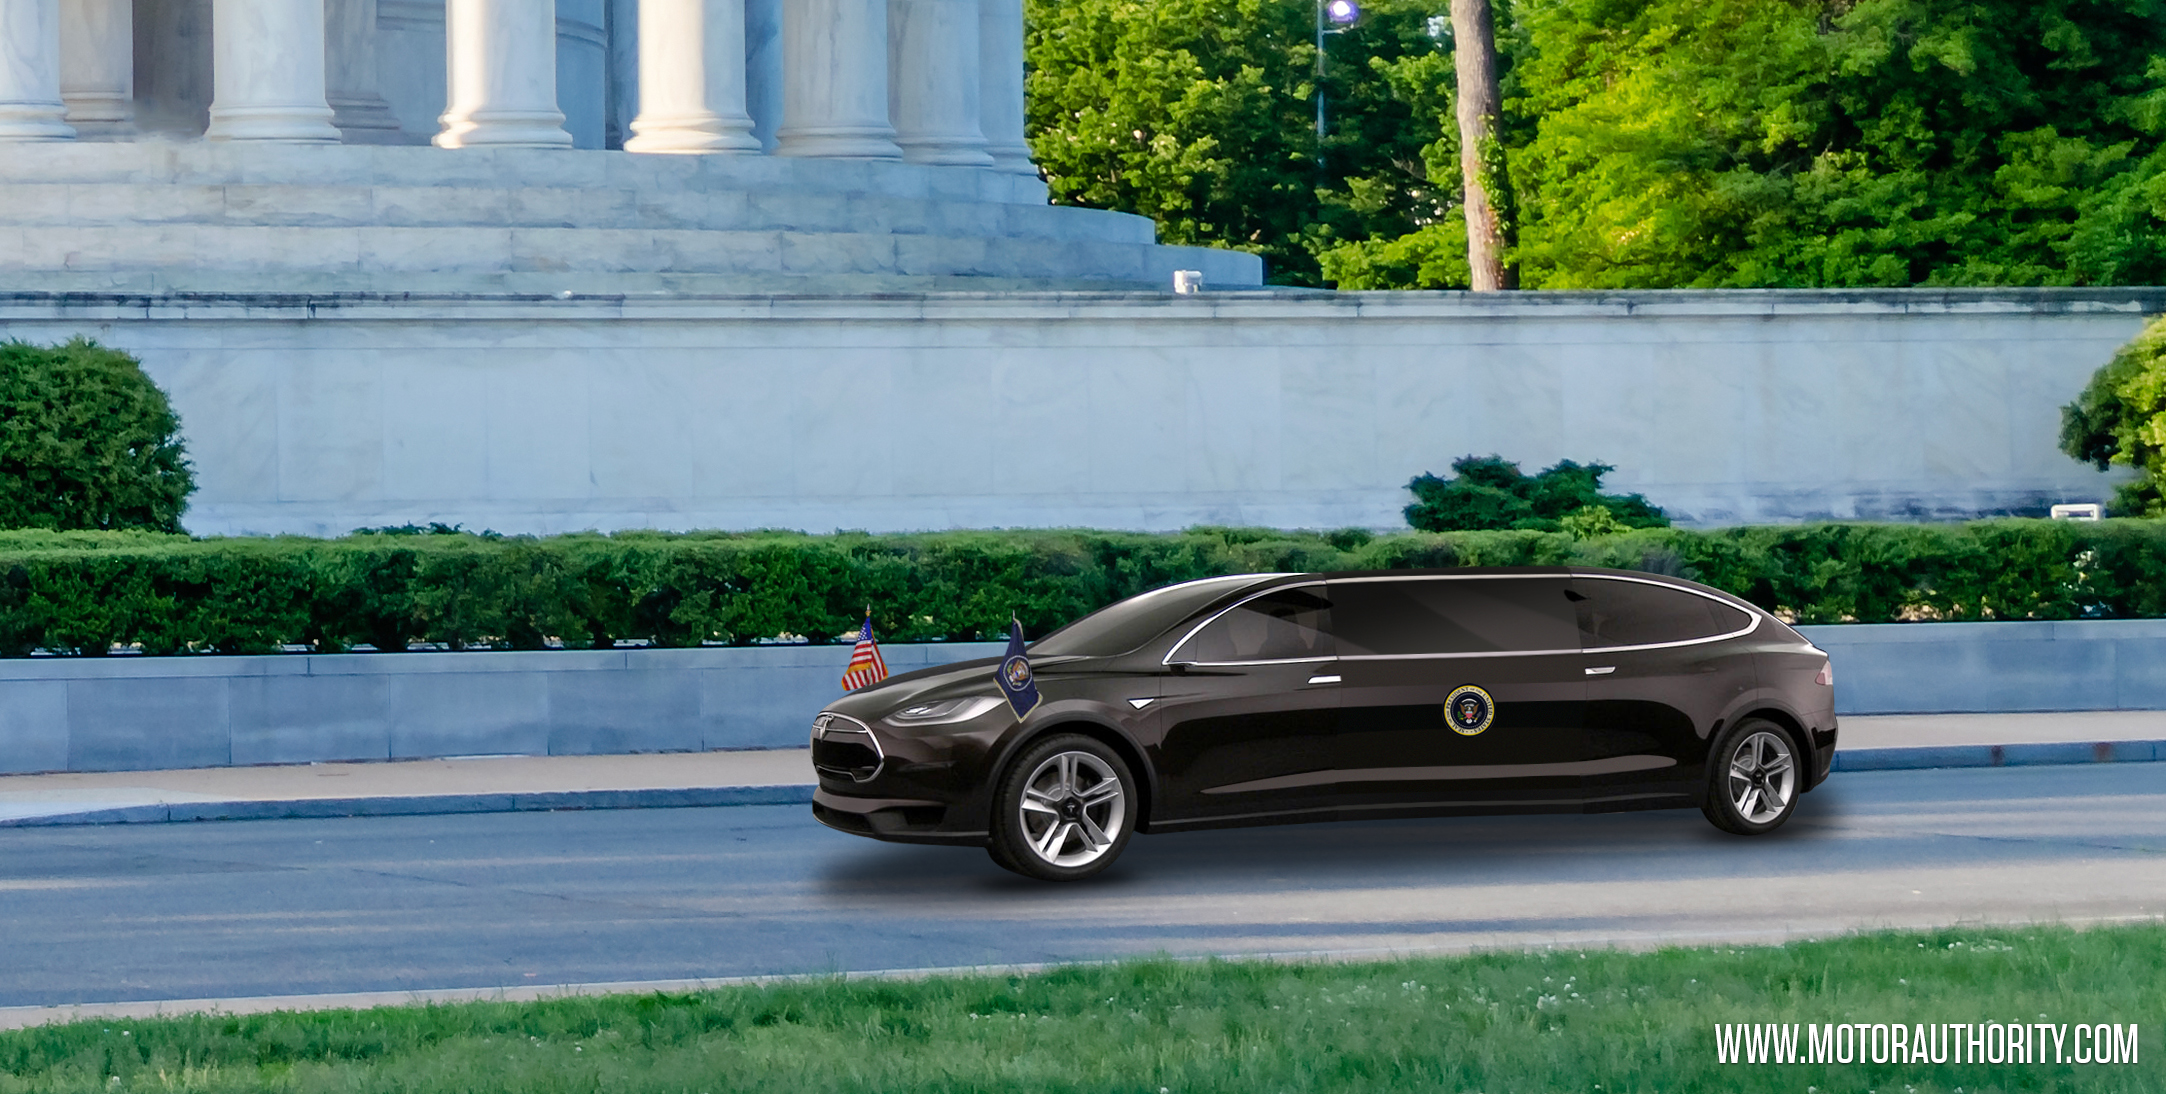 Should The Next Presidential Limo Be A Tesla